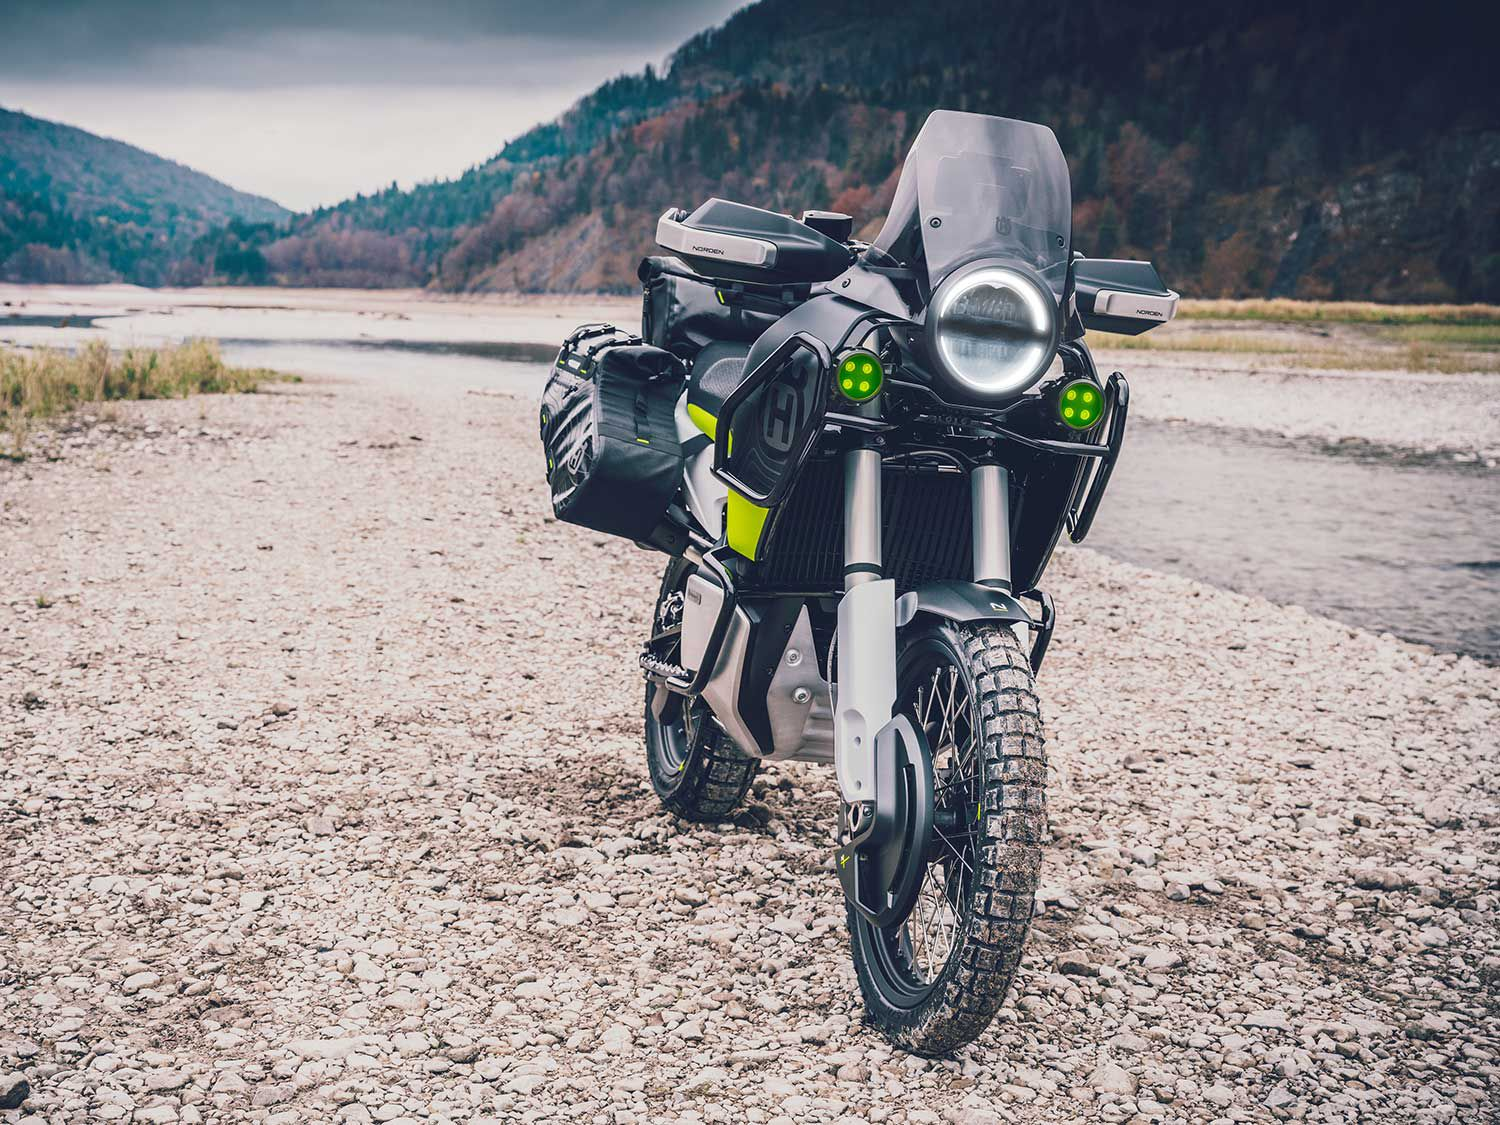 The Norden carries an 889.5cc parallel-twin engine.